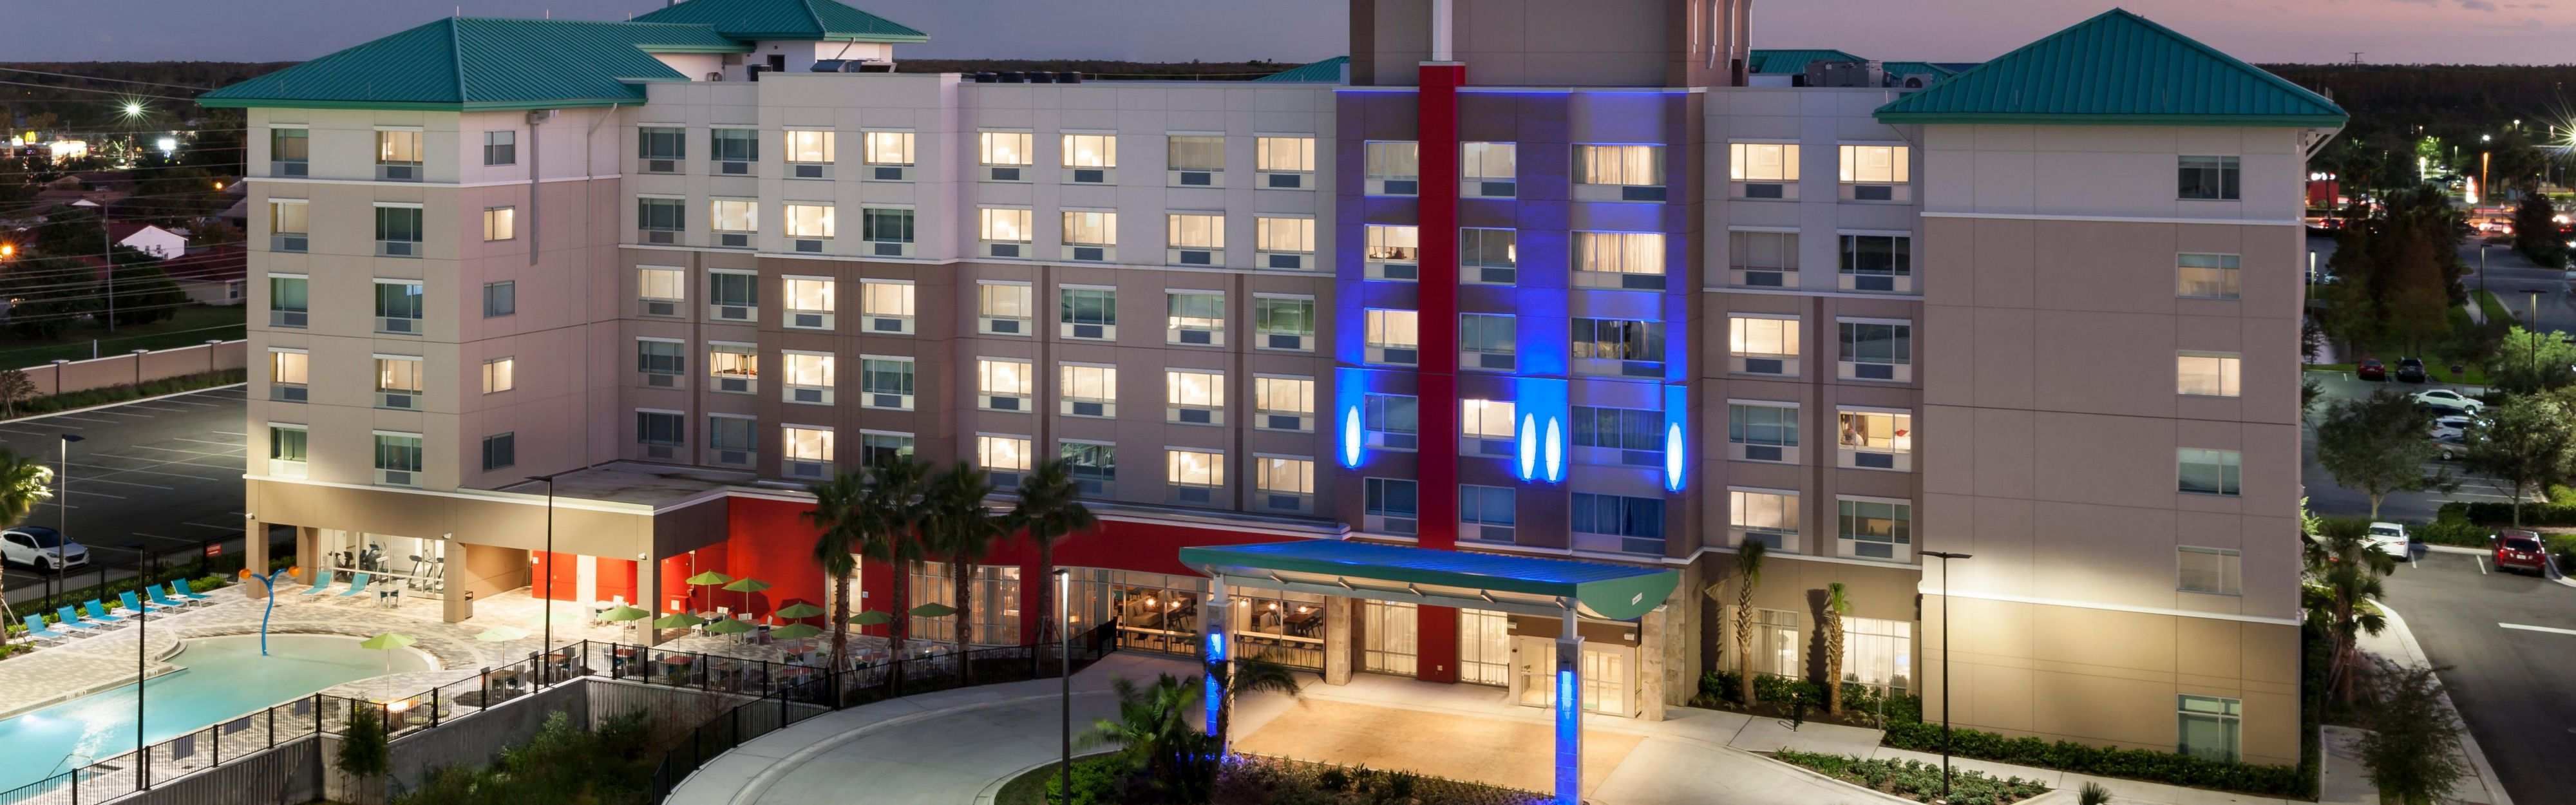 Holiday Inn Express Orlando At Seaworld image 0